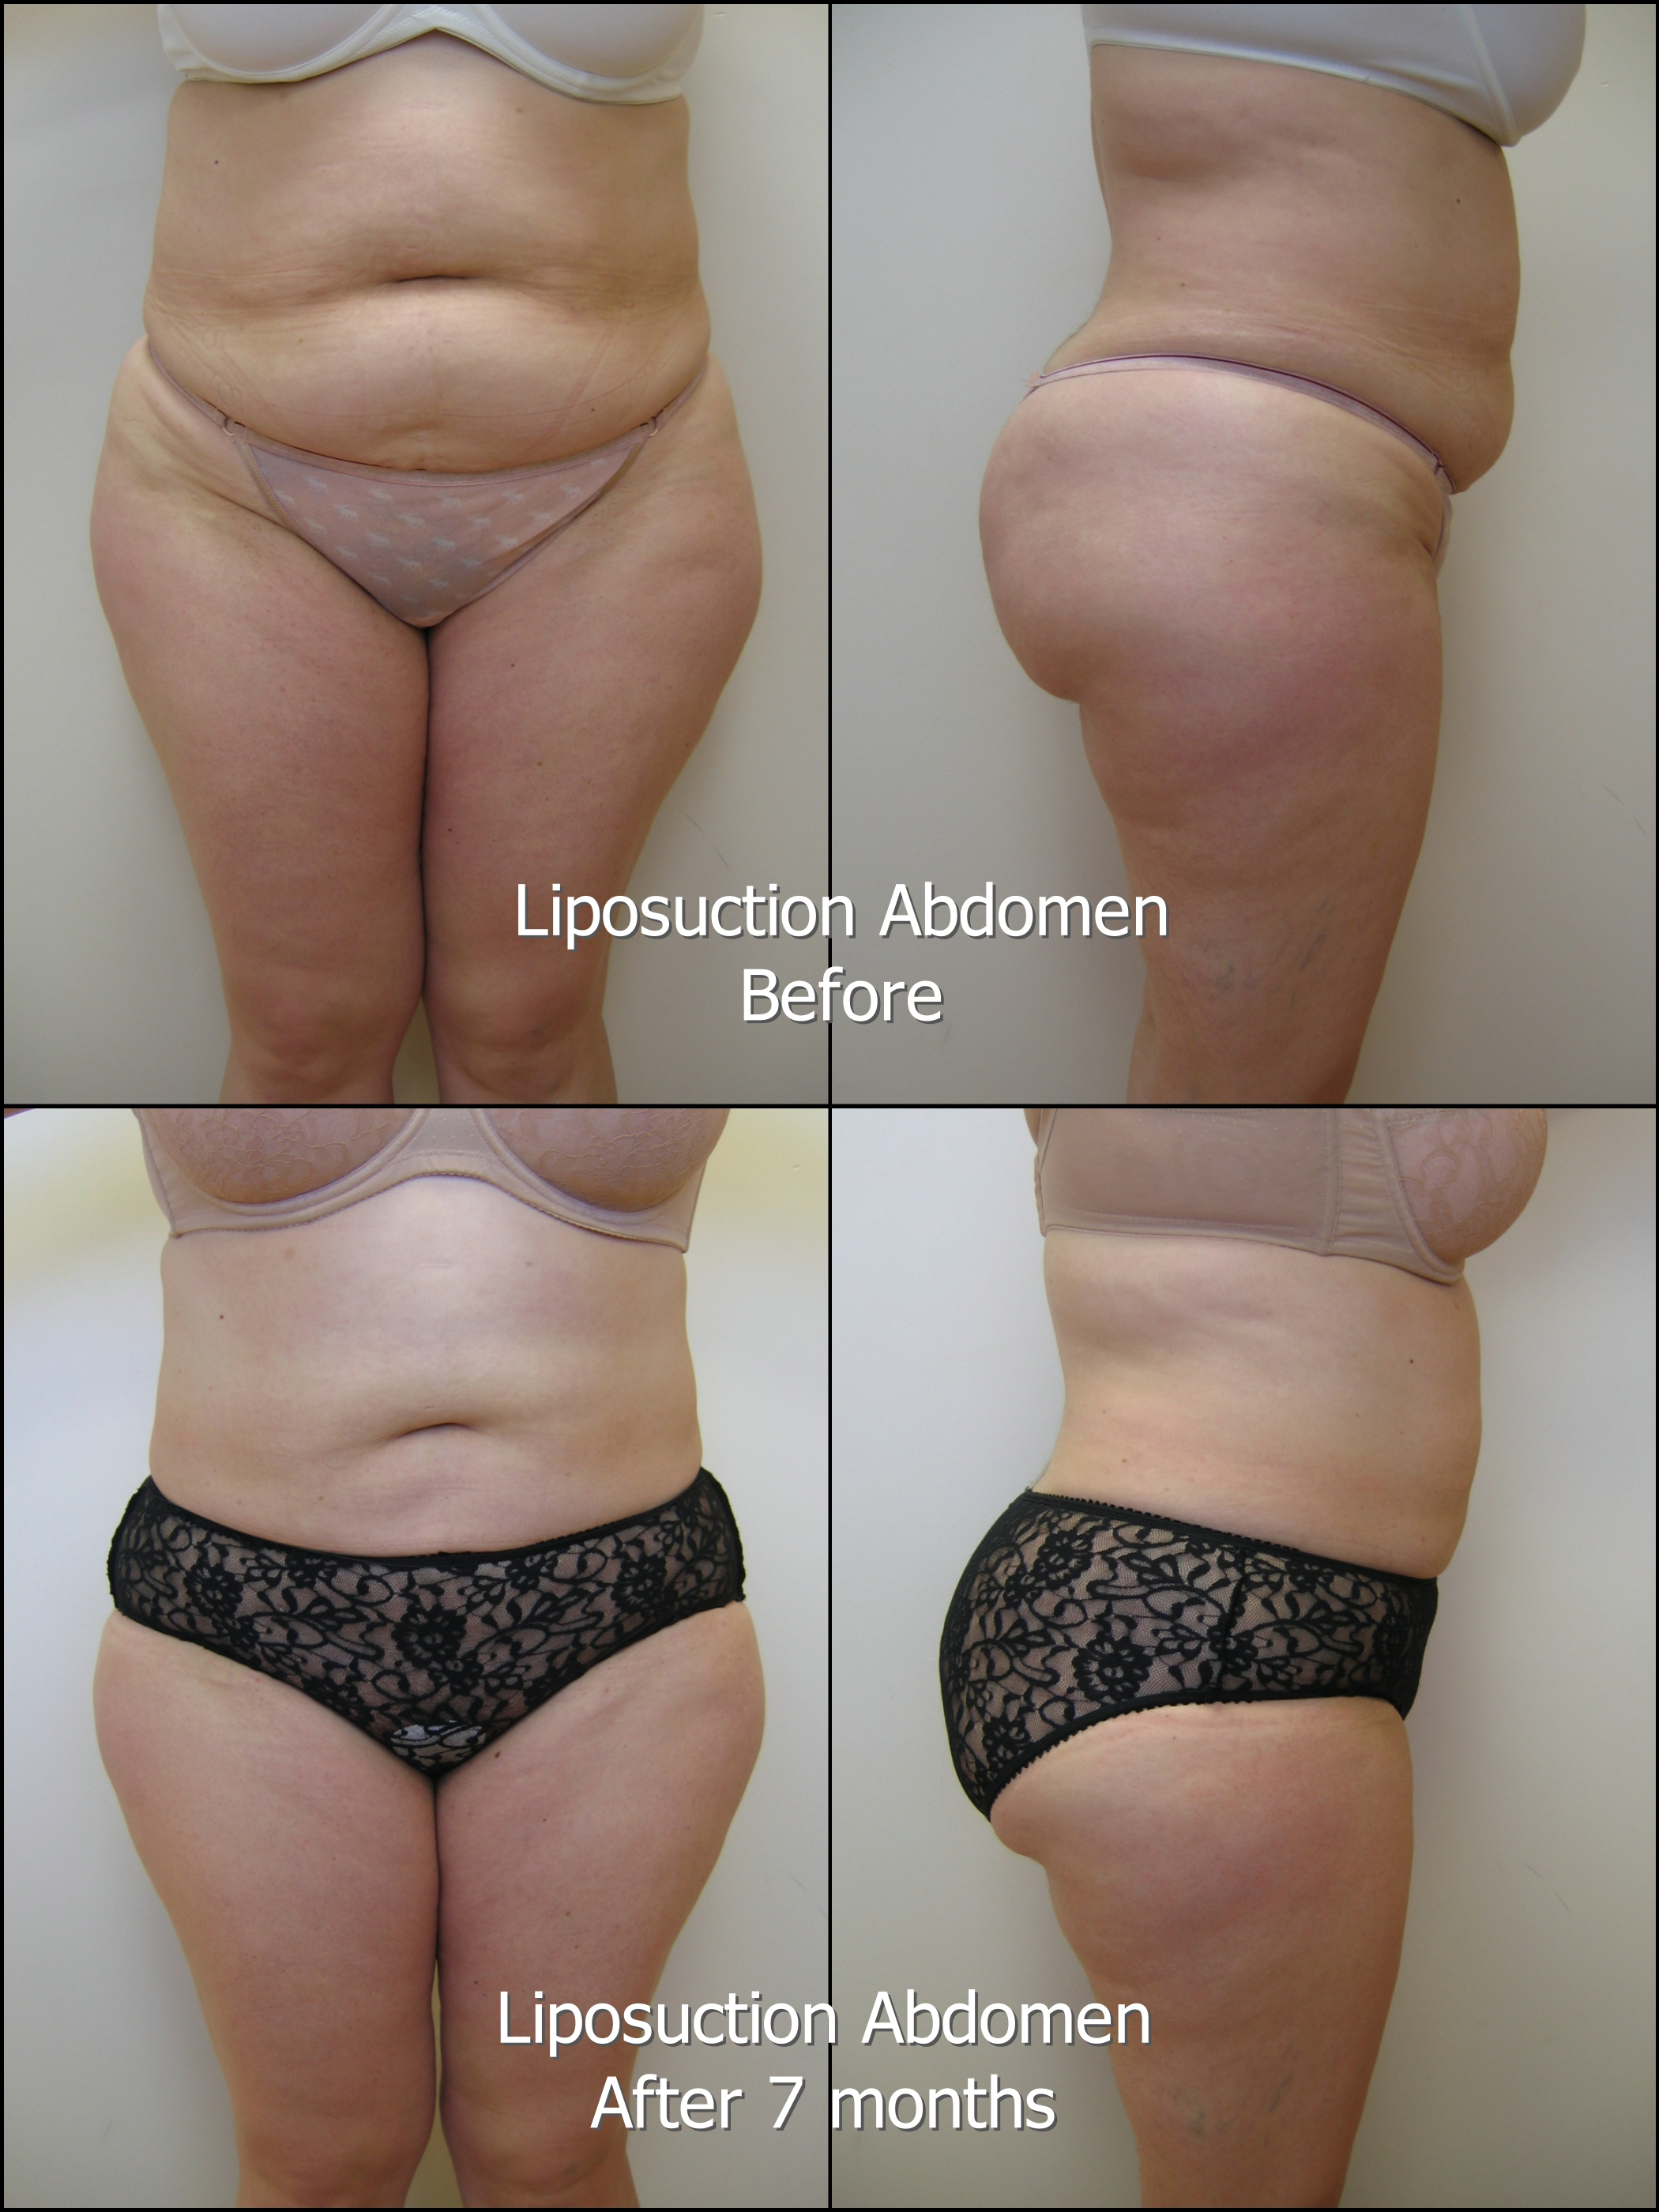 801_PB_Liposuction_Abd_labelled.jpg